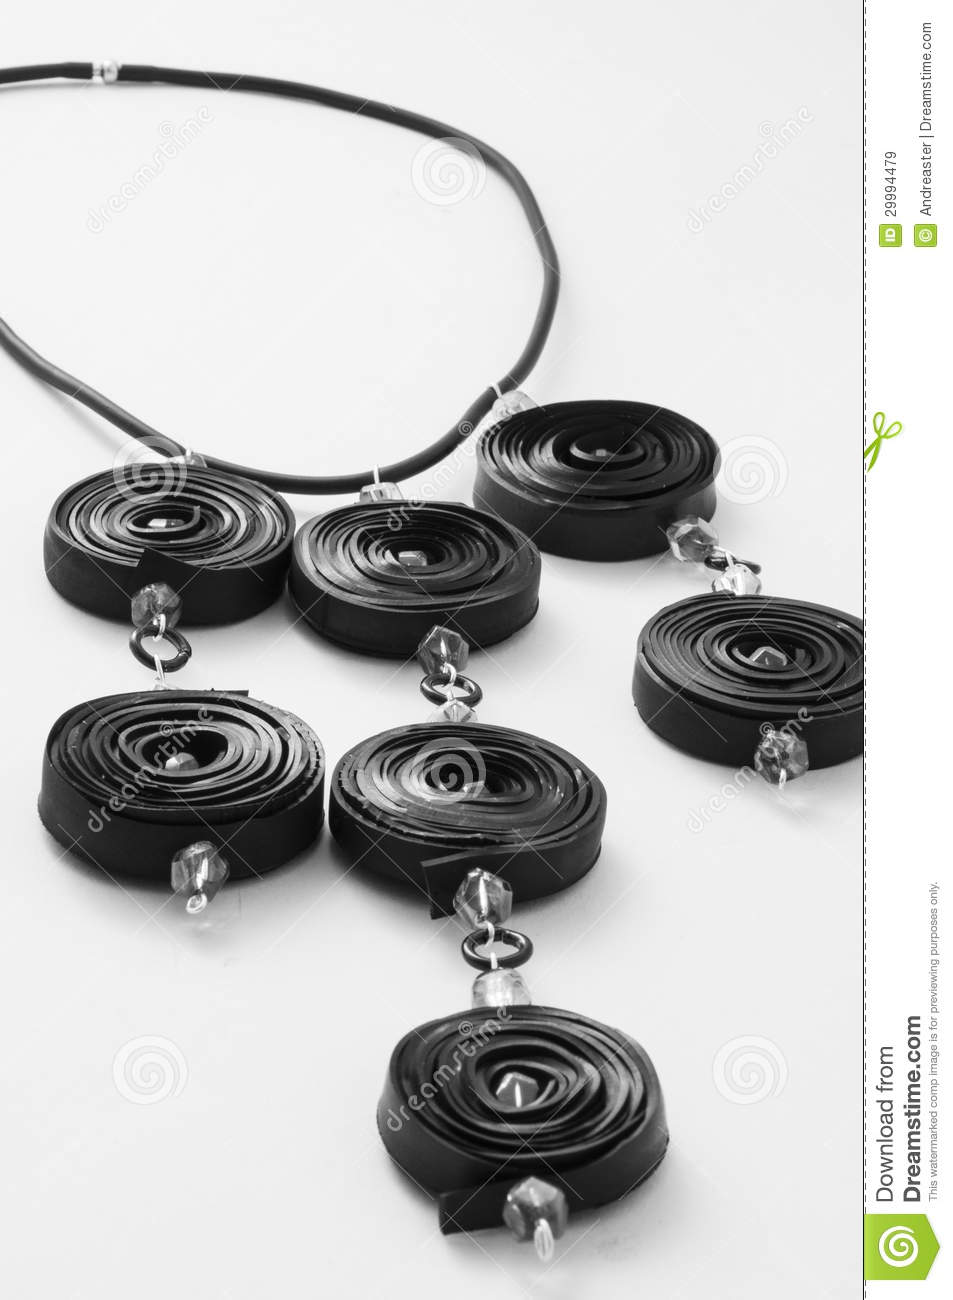 Ecojewelry Necklace From Bicycle Inner Tube Stock Image